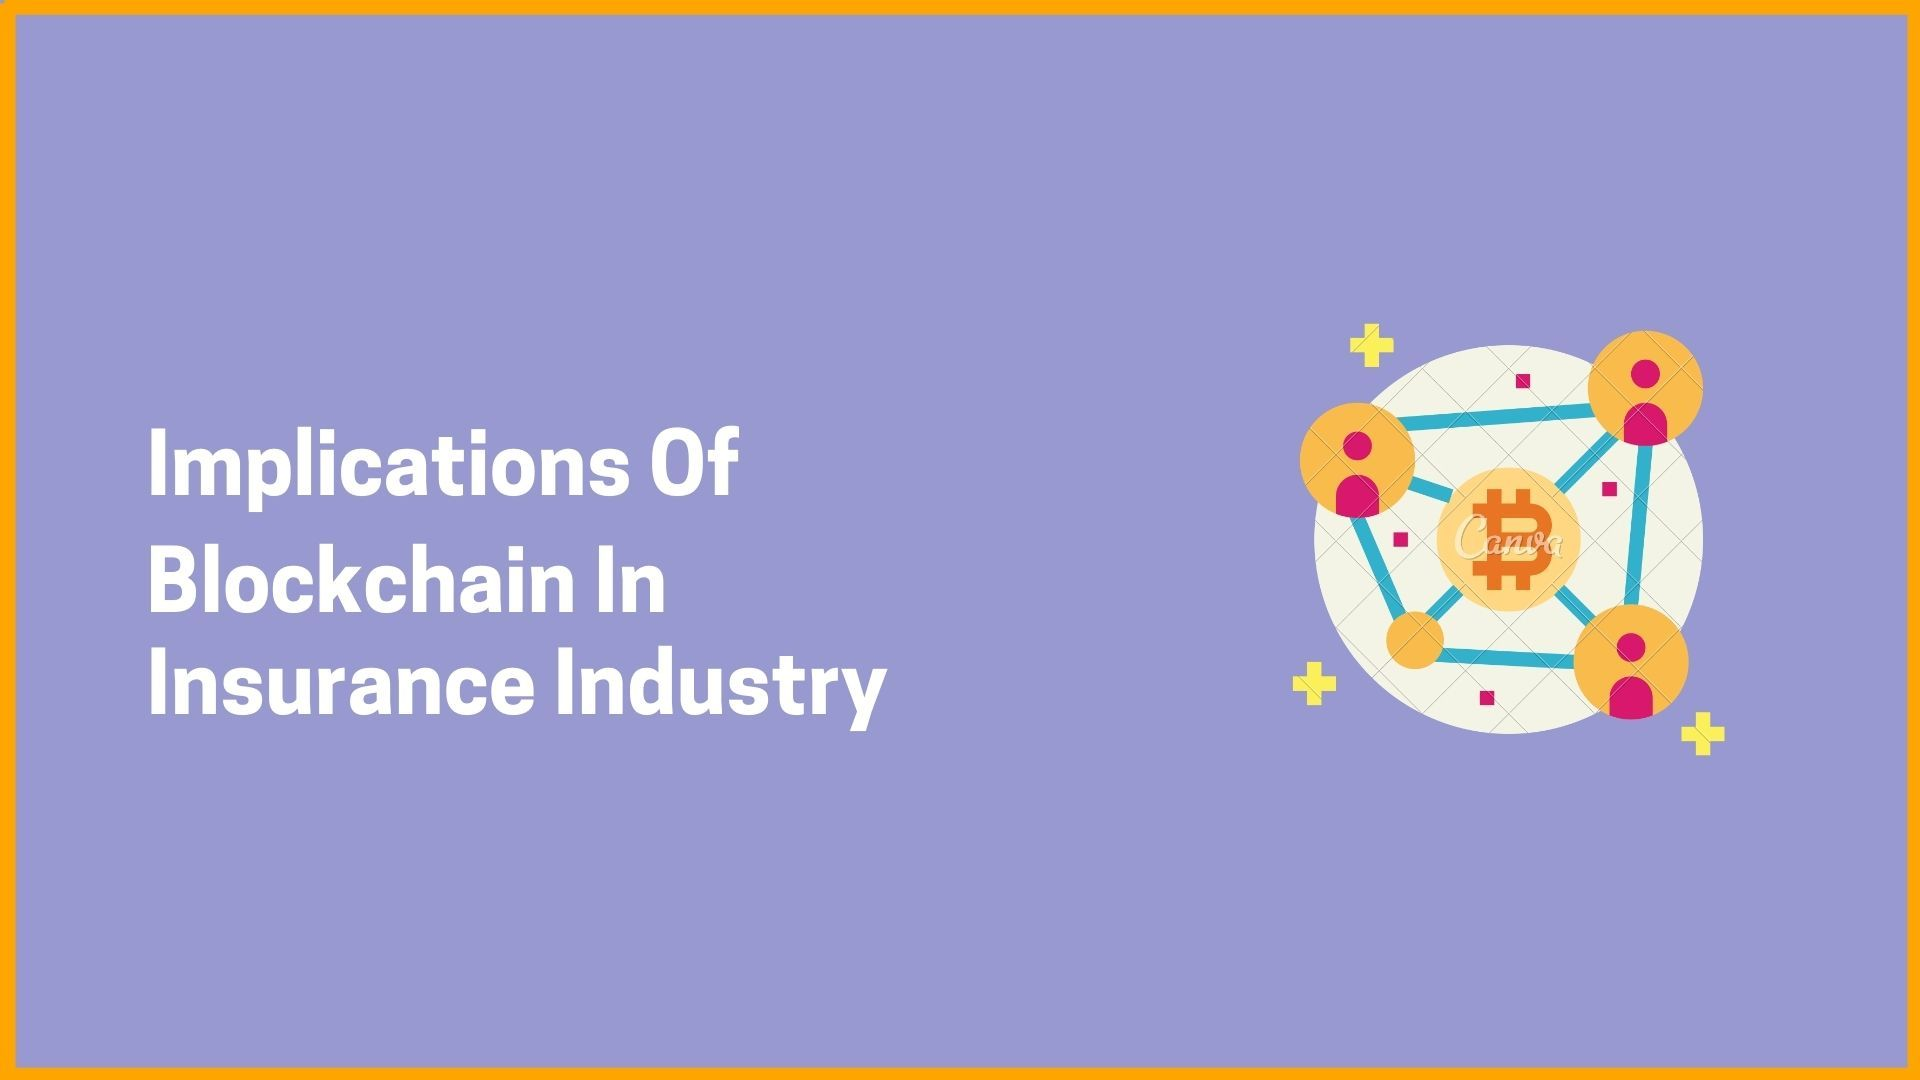 Implications Of Blockchain In Insurance Industry